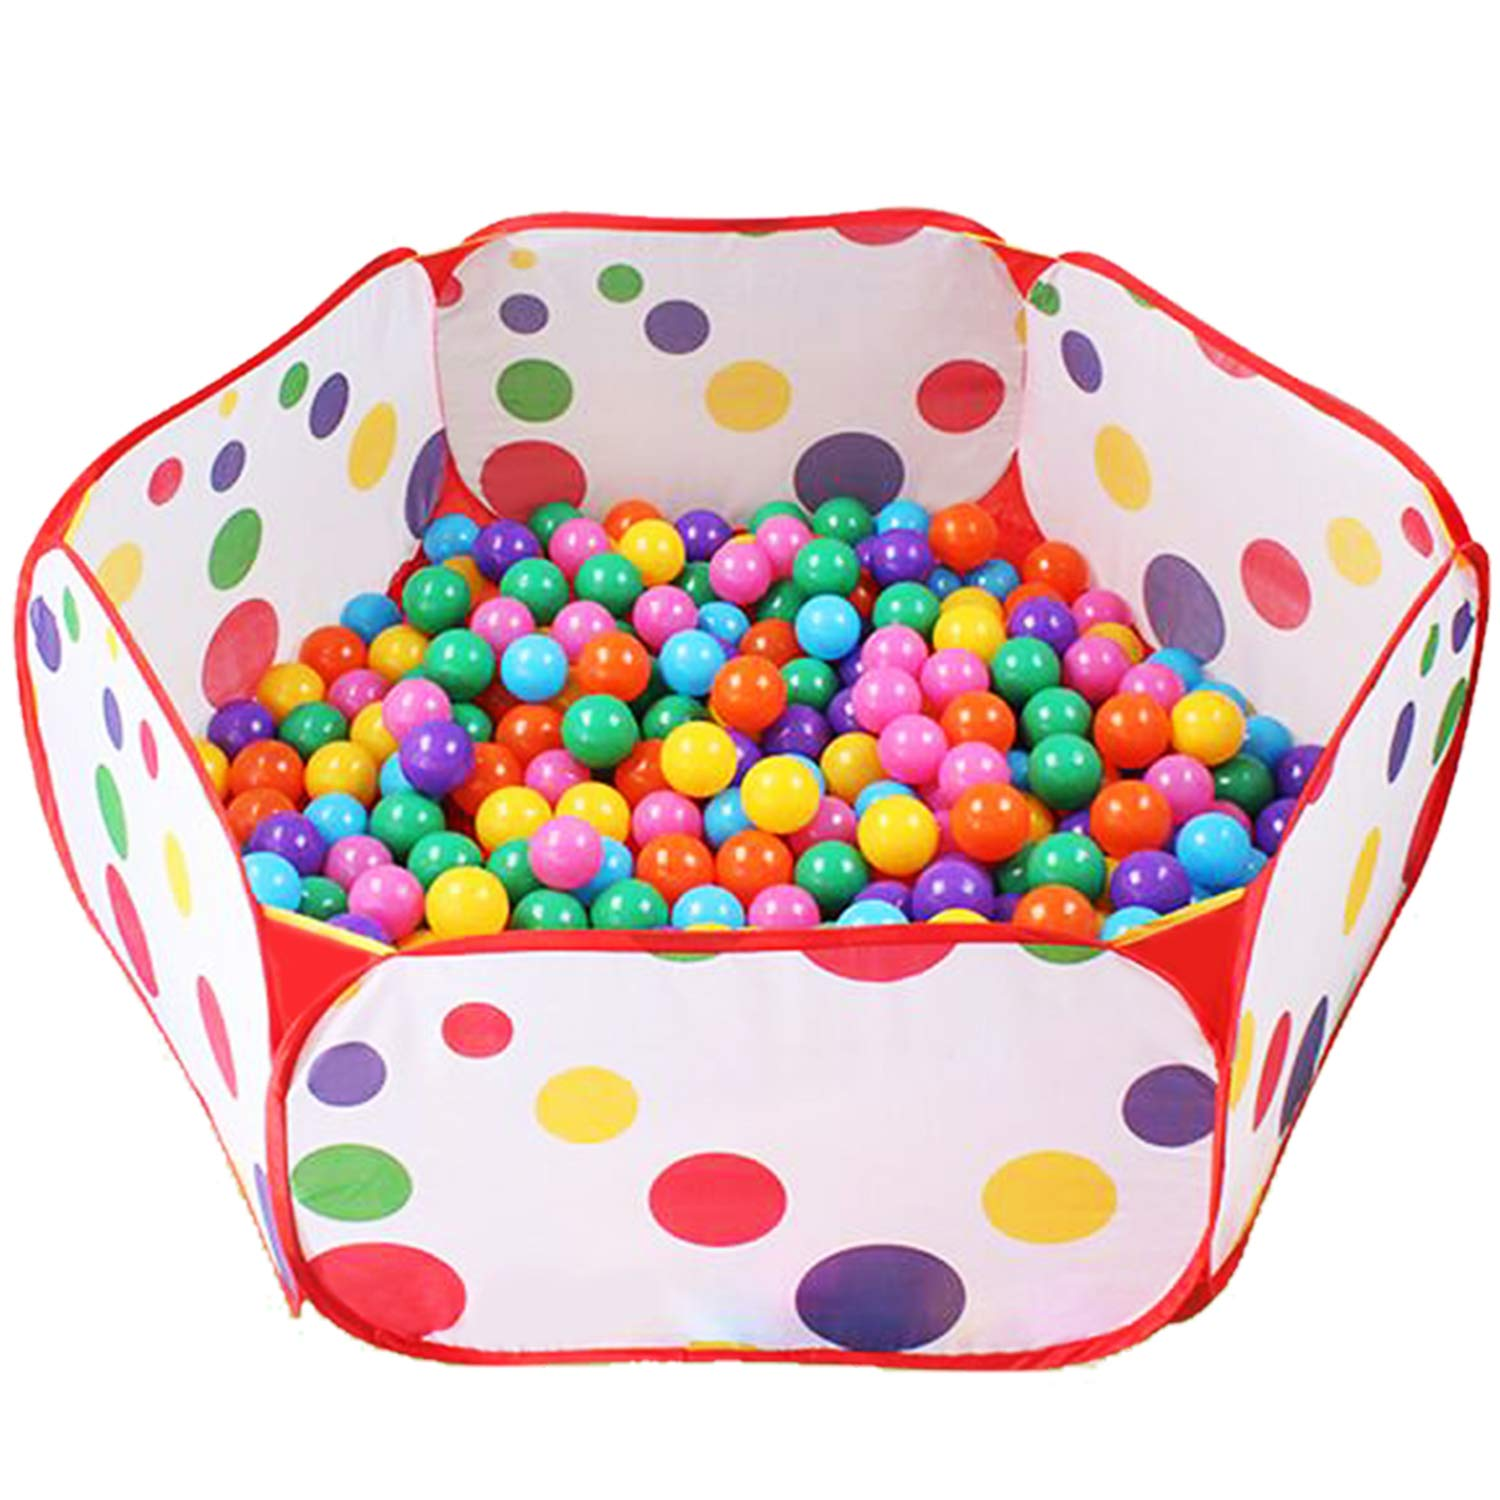 Kimitech Kids Ball Pit Playpen, 39.4-inch by 14.6-Inch with Zippered Storage Bag(Not Include Balls)